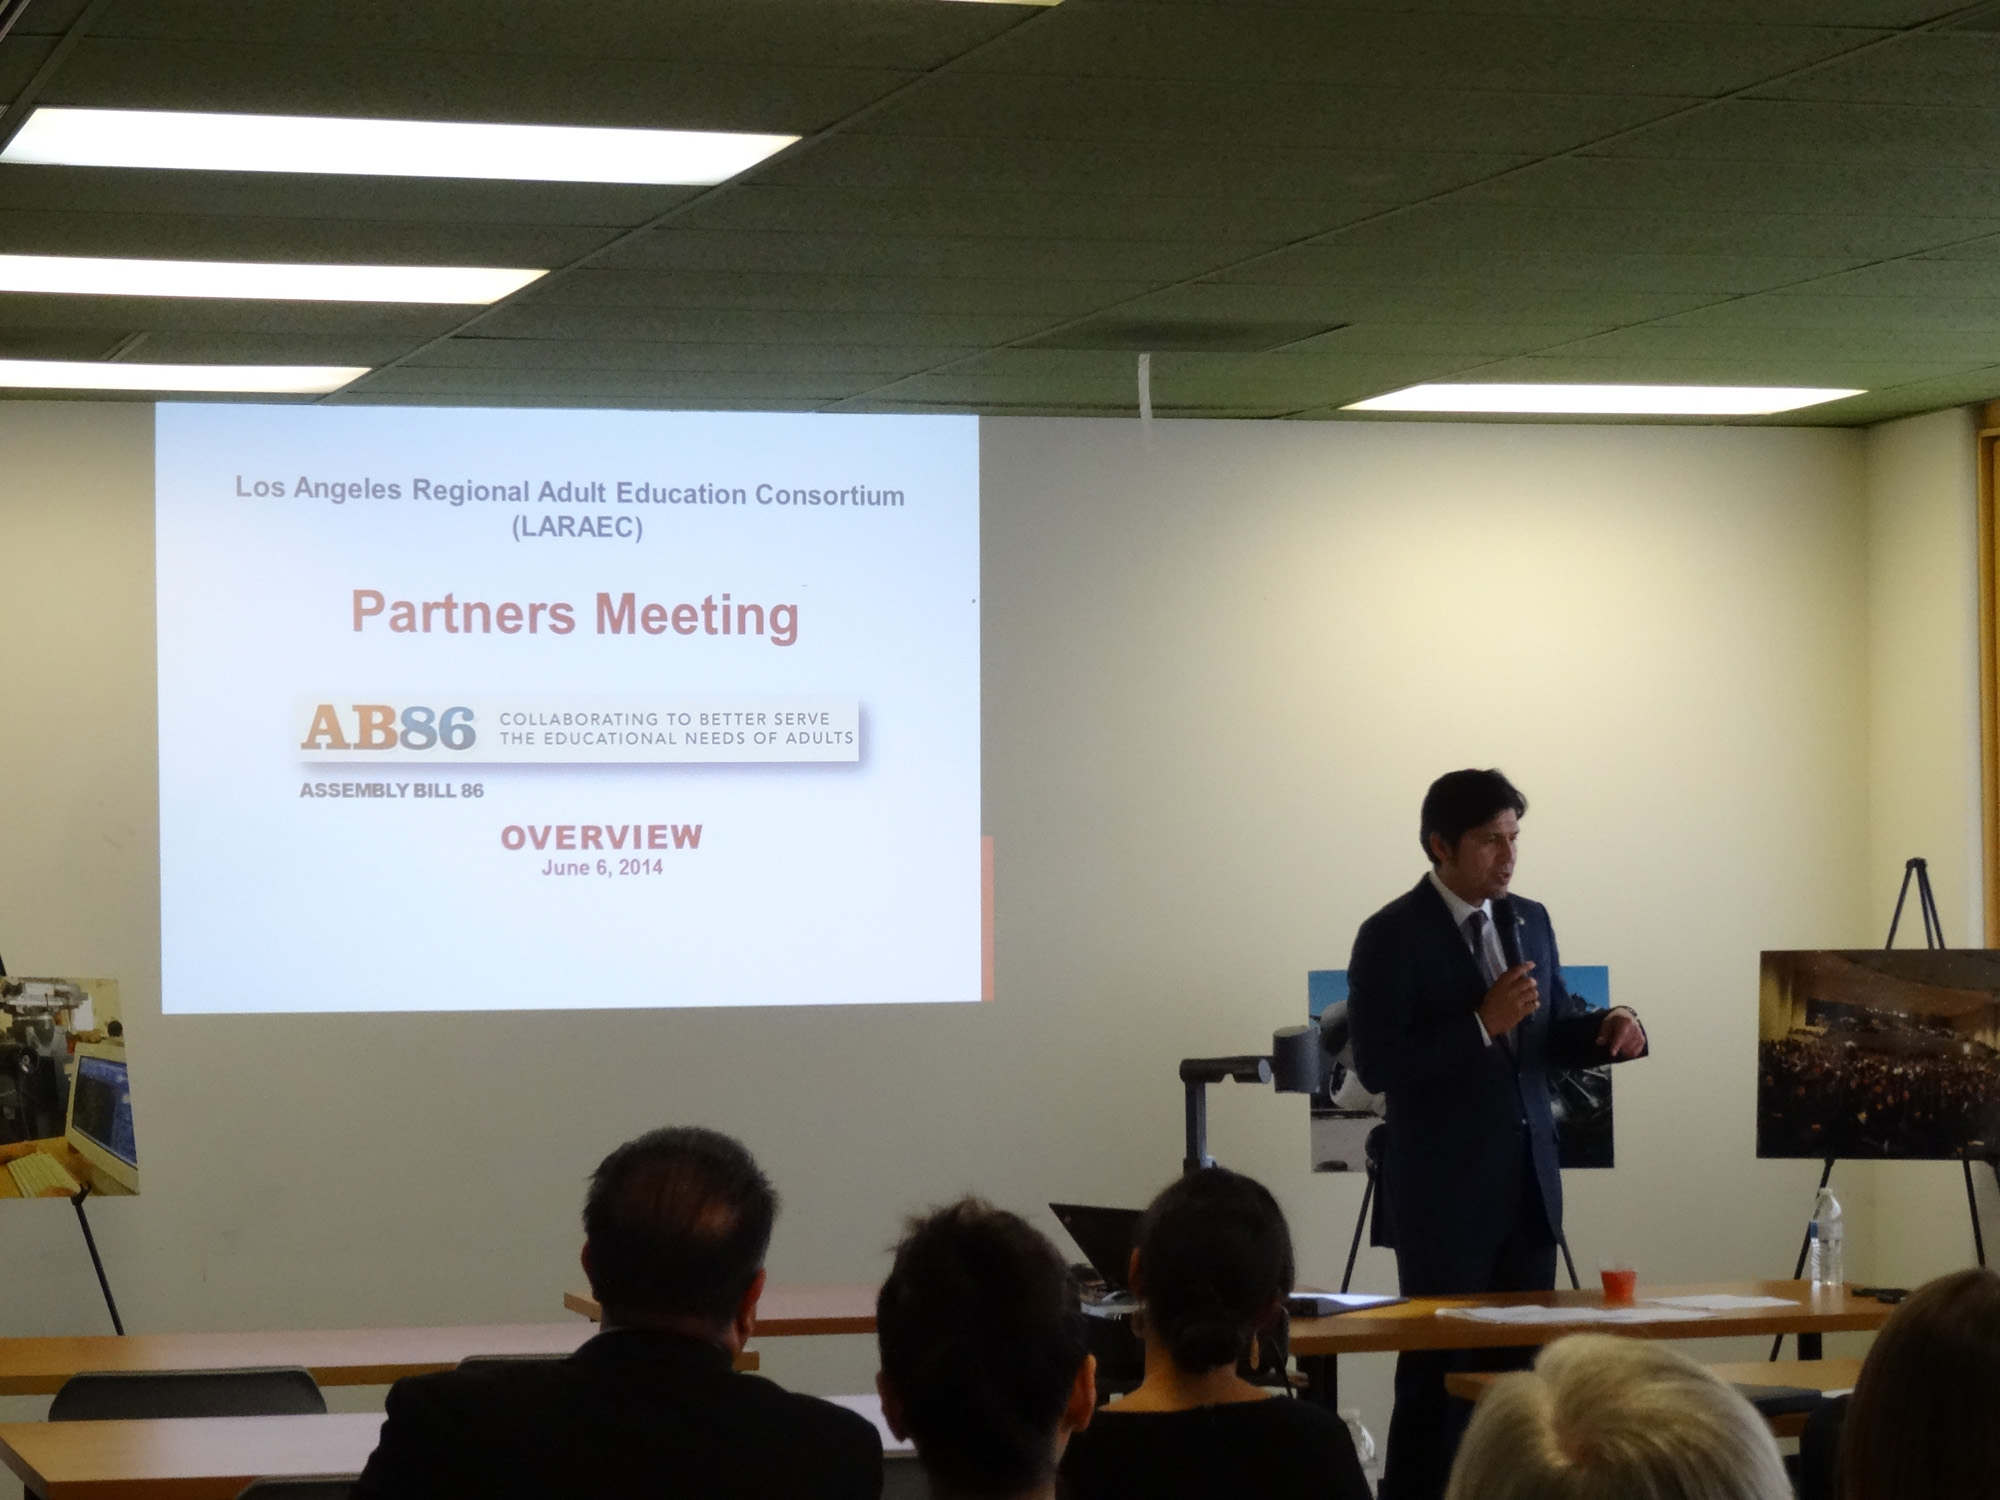 LARAEC-Partners-Meeting-06-06-14-11